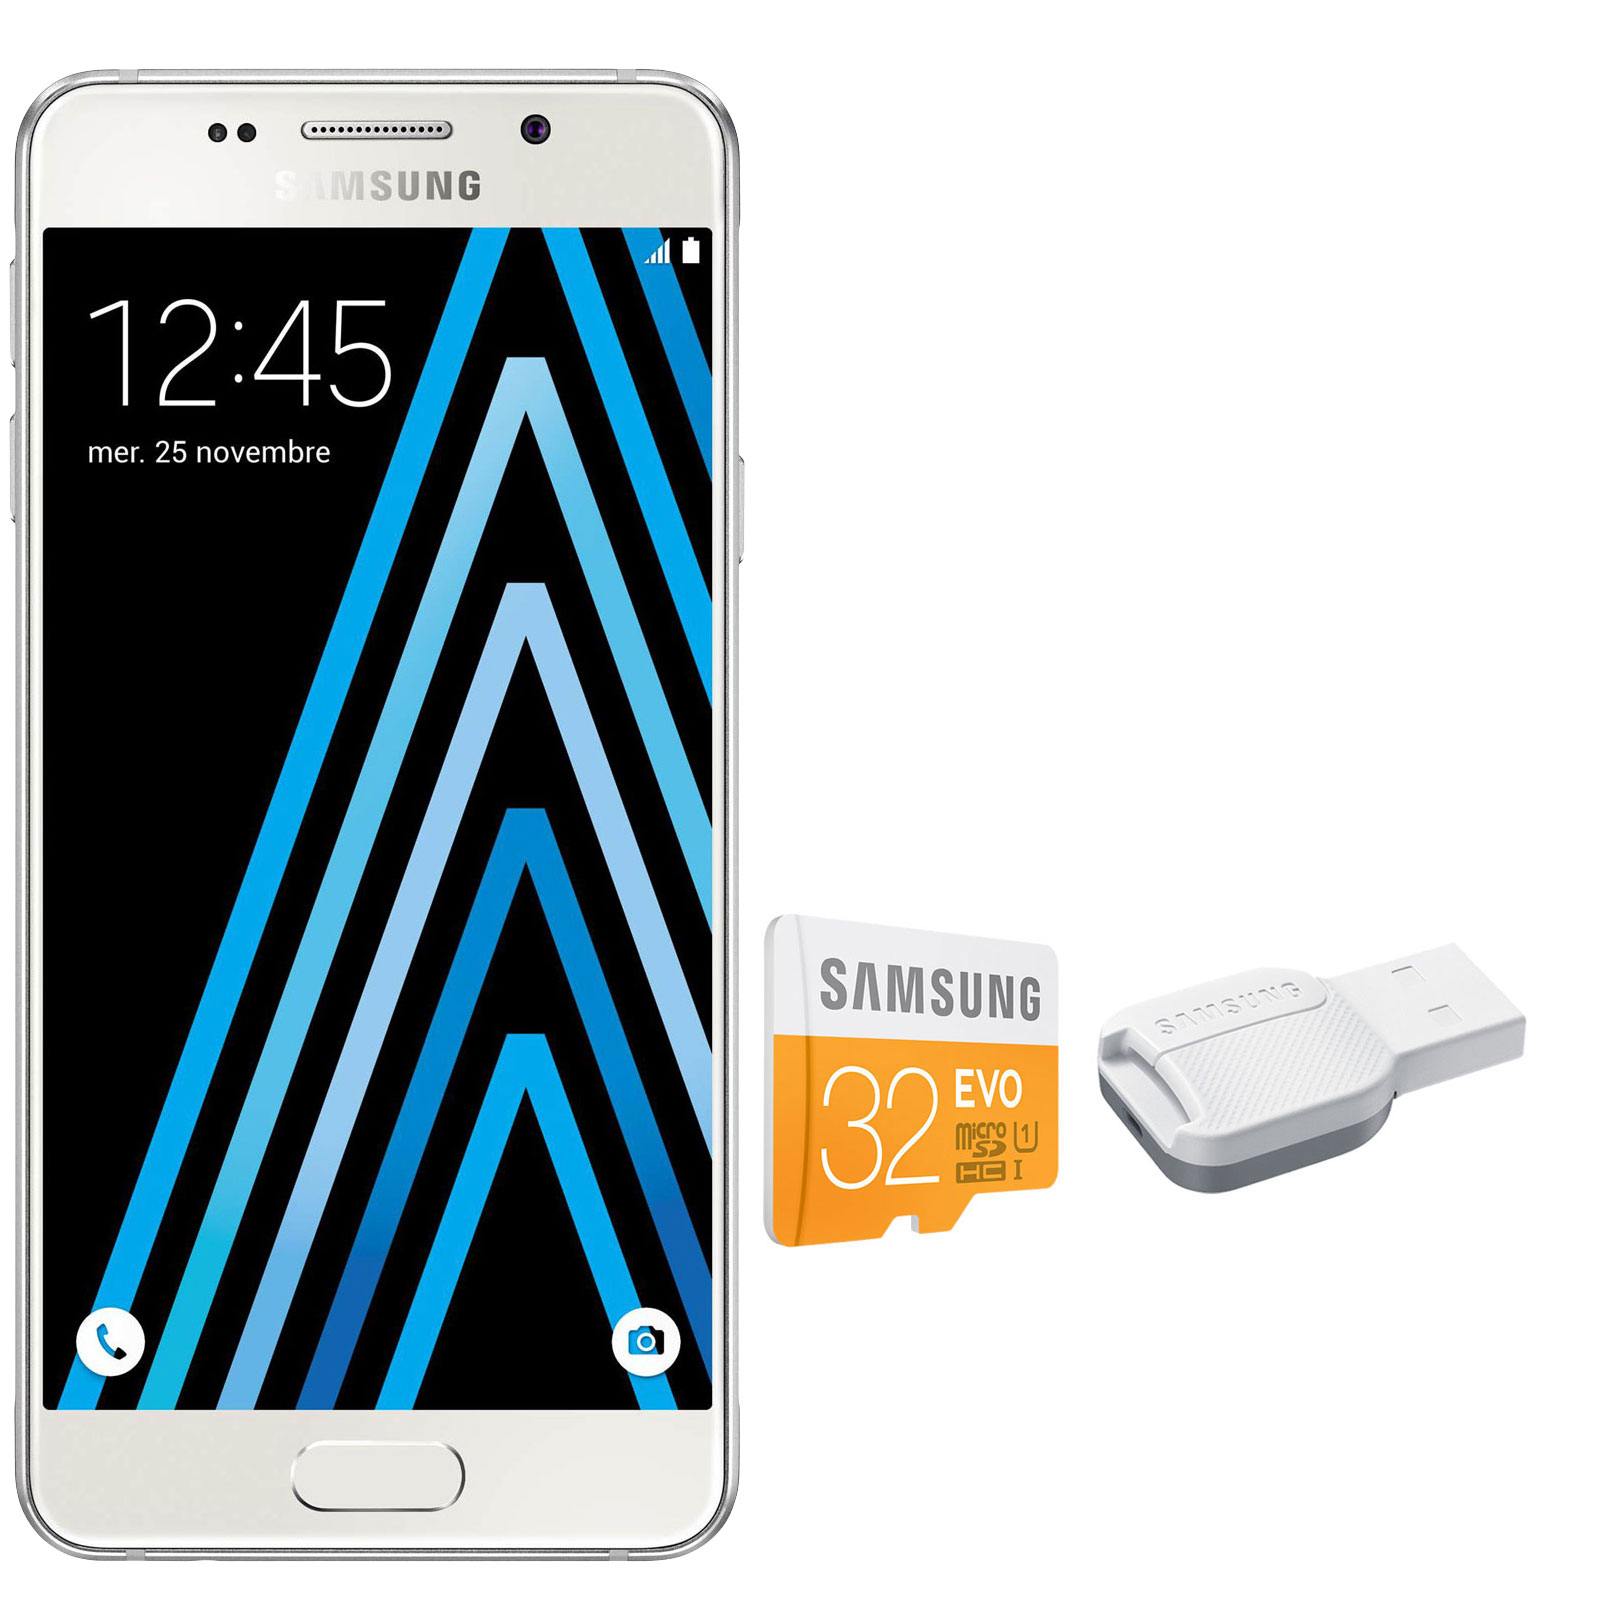 samsung galaxy a3 2016 blanc microsdhc 32 go mobile smartphone samsung sur ldlc. Black Bedroom Furniture Sets. Home Design Ideas